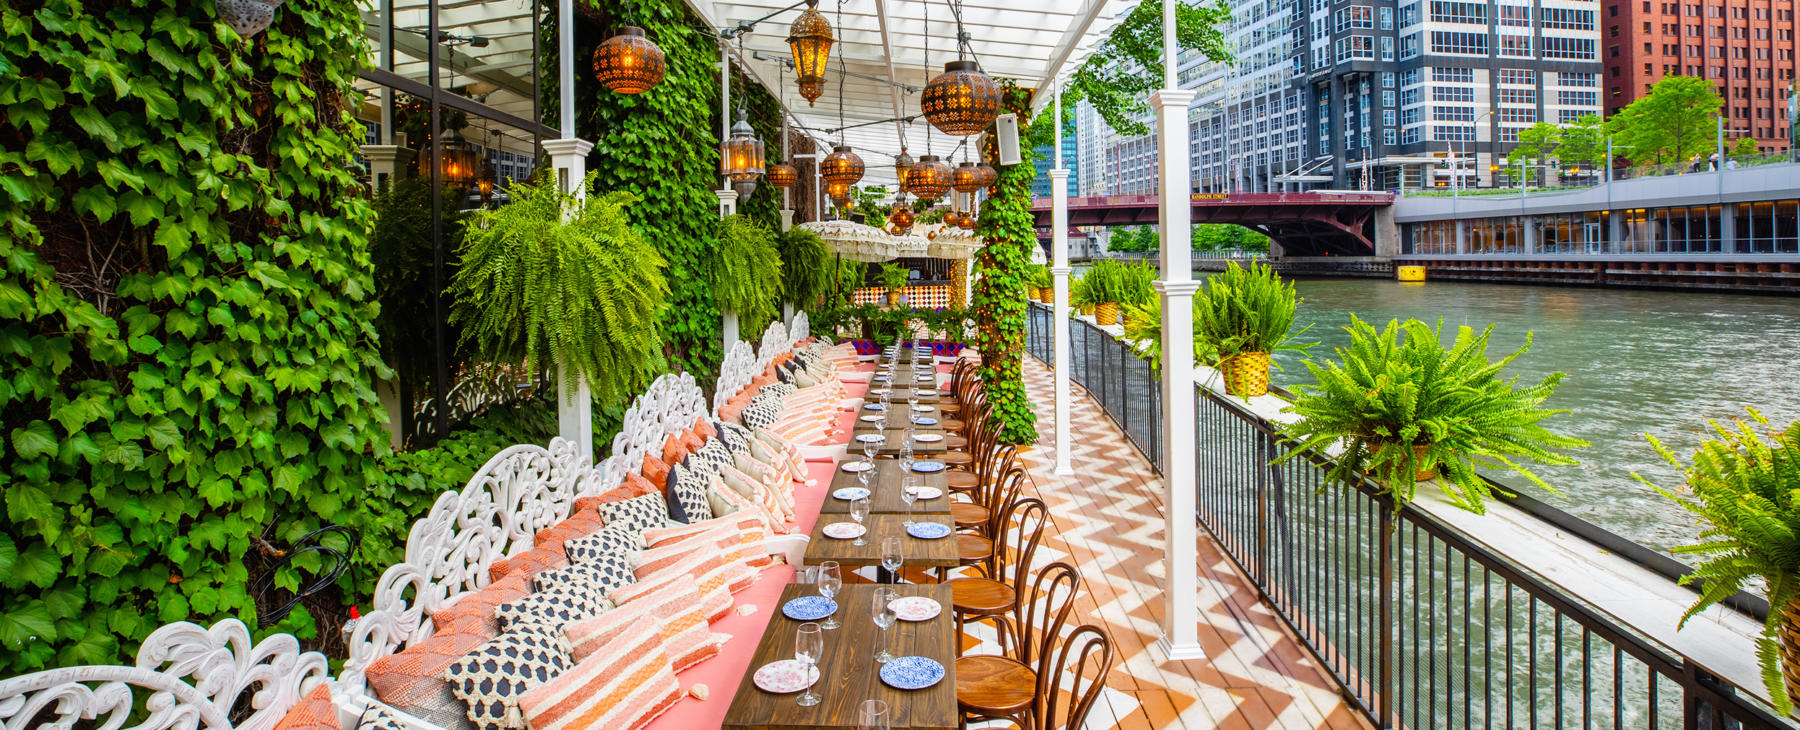 Outdoor dining in Chicago: Patios and rooftops open right now